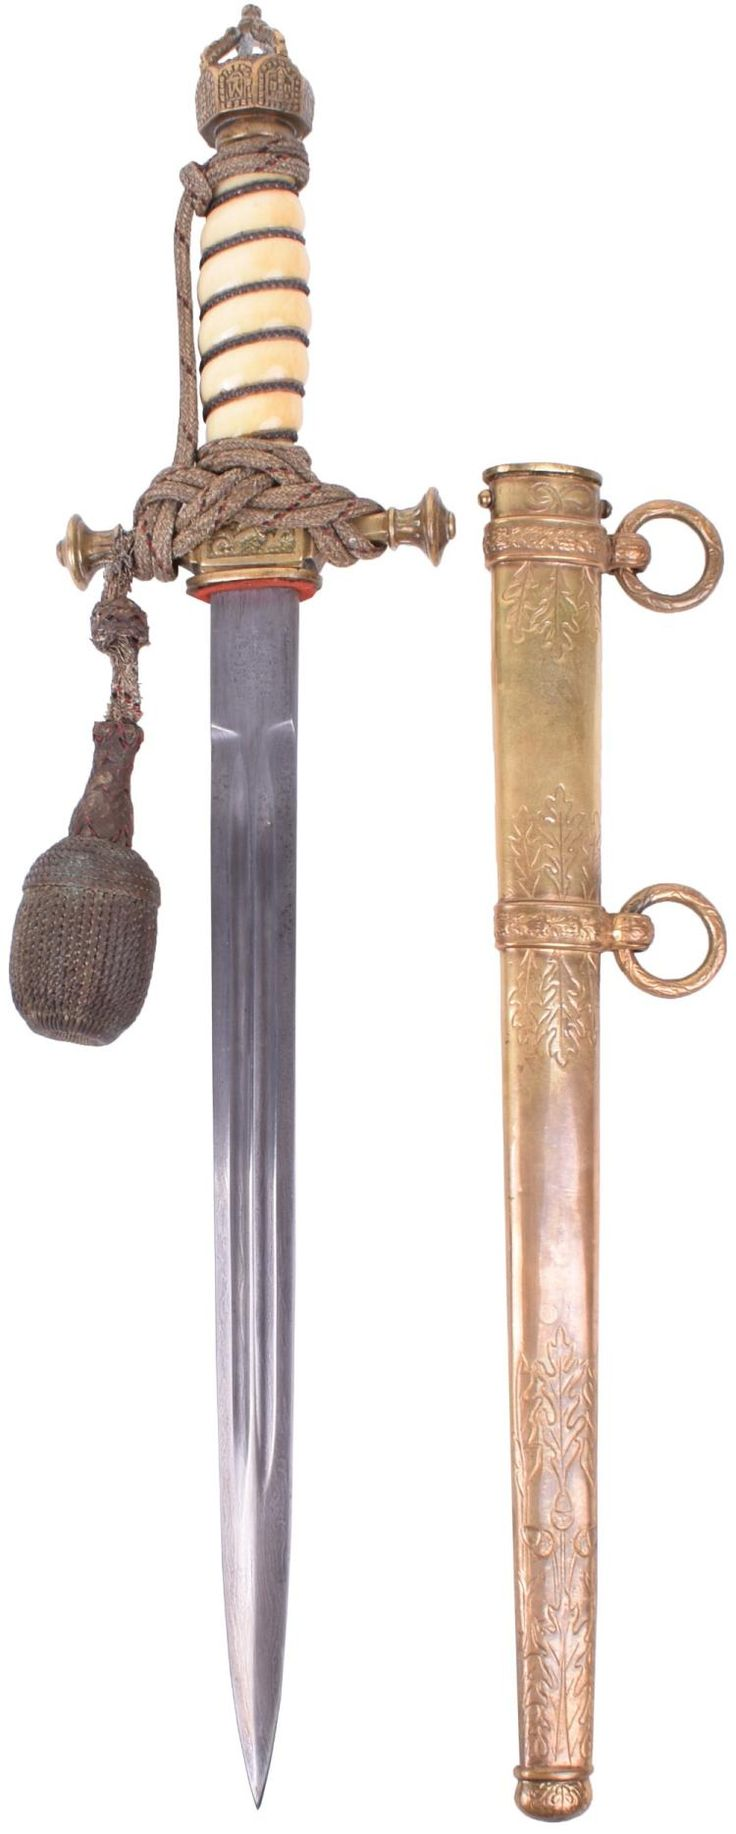 MPERIAL GERMAN NAVAL OFFICERS DRESS DAGGER WITH DELUXE DAMASCUS BLADE